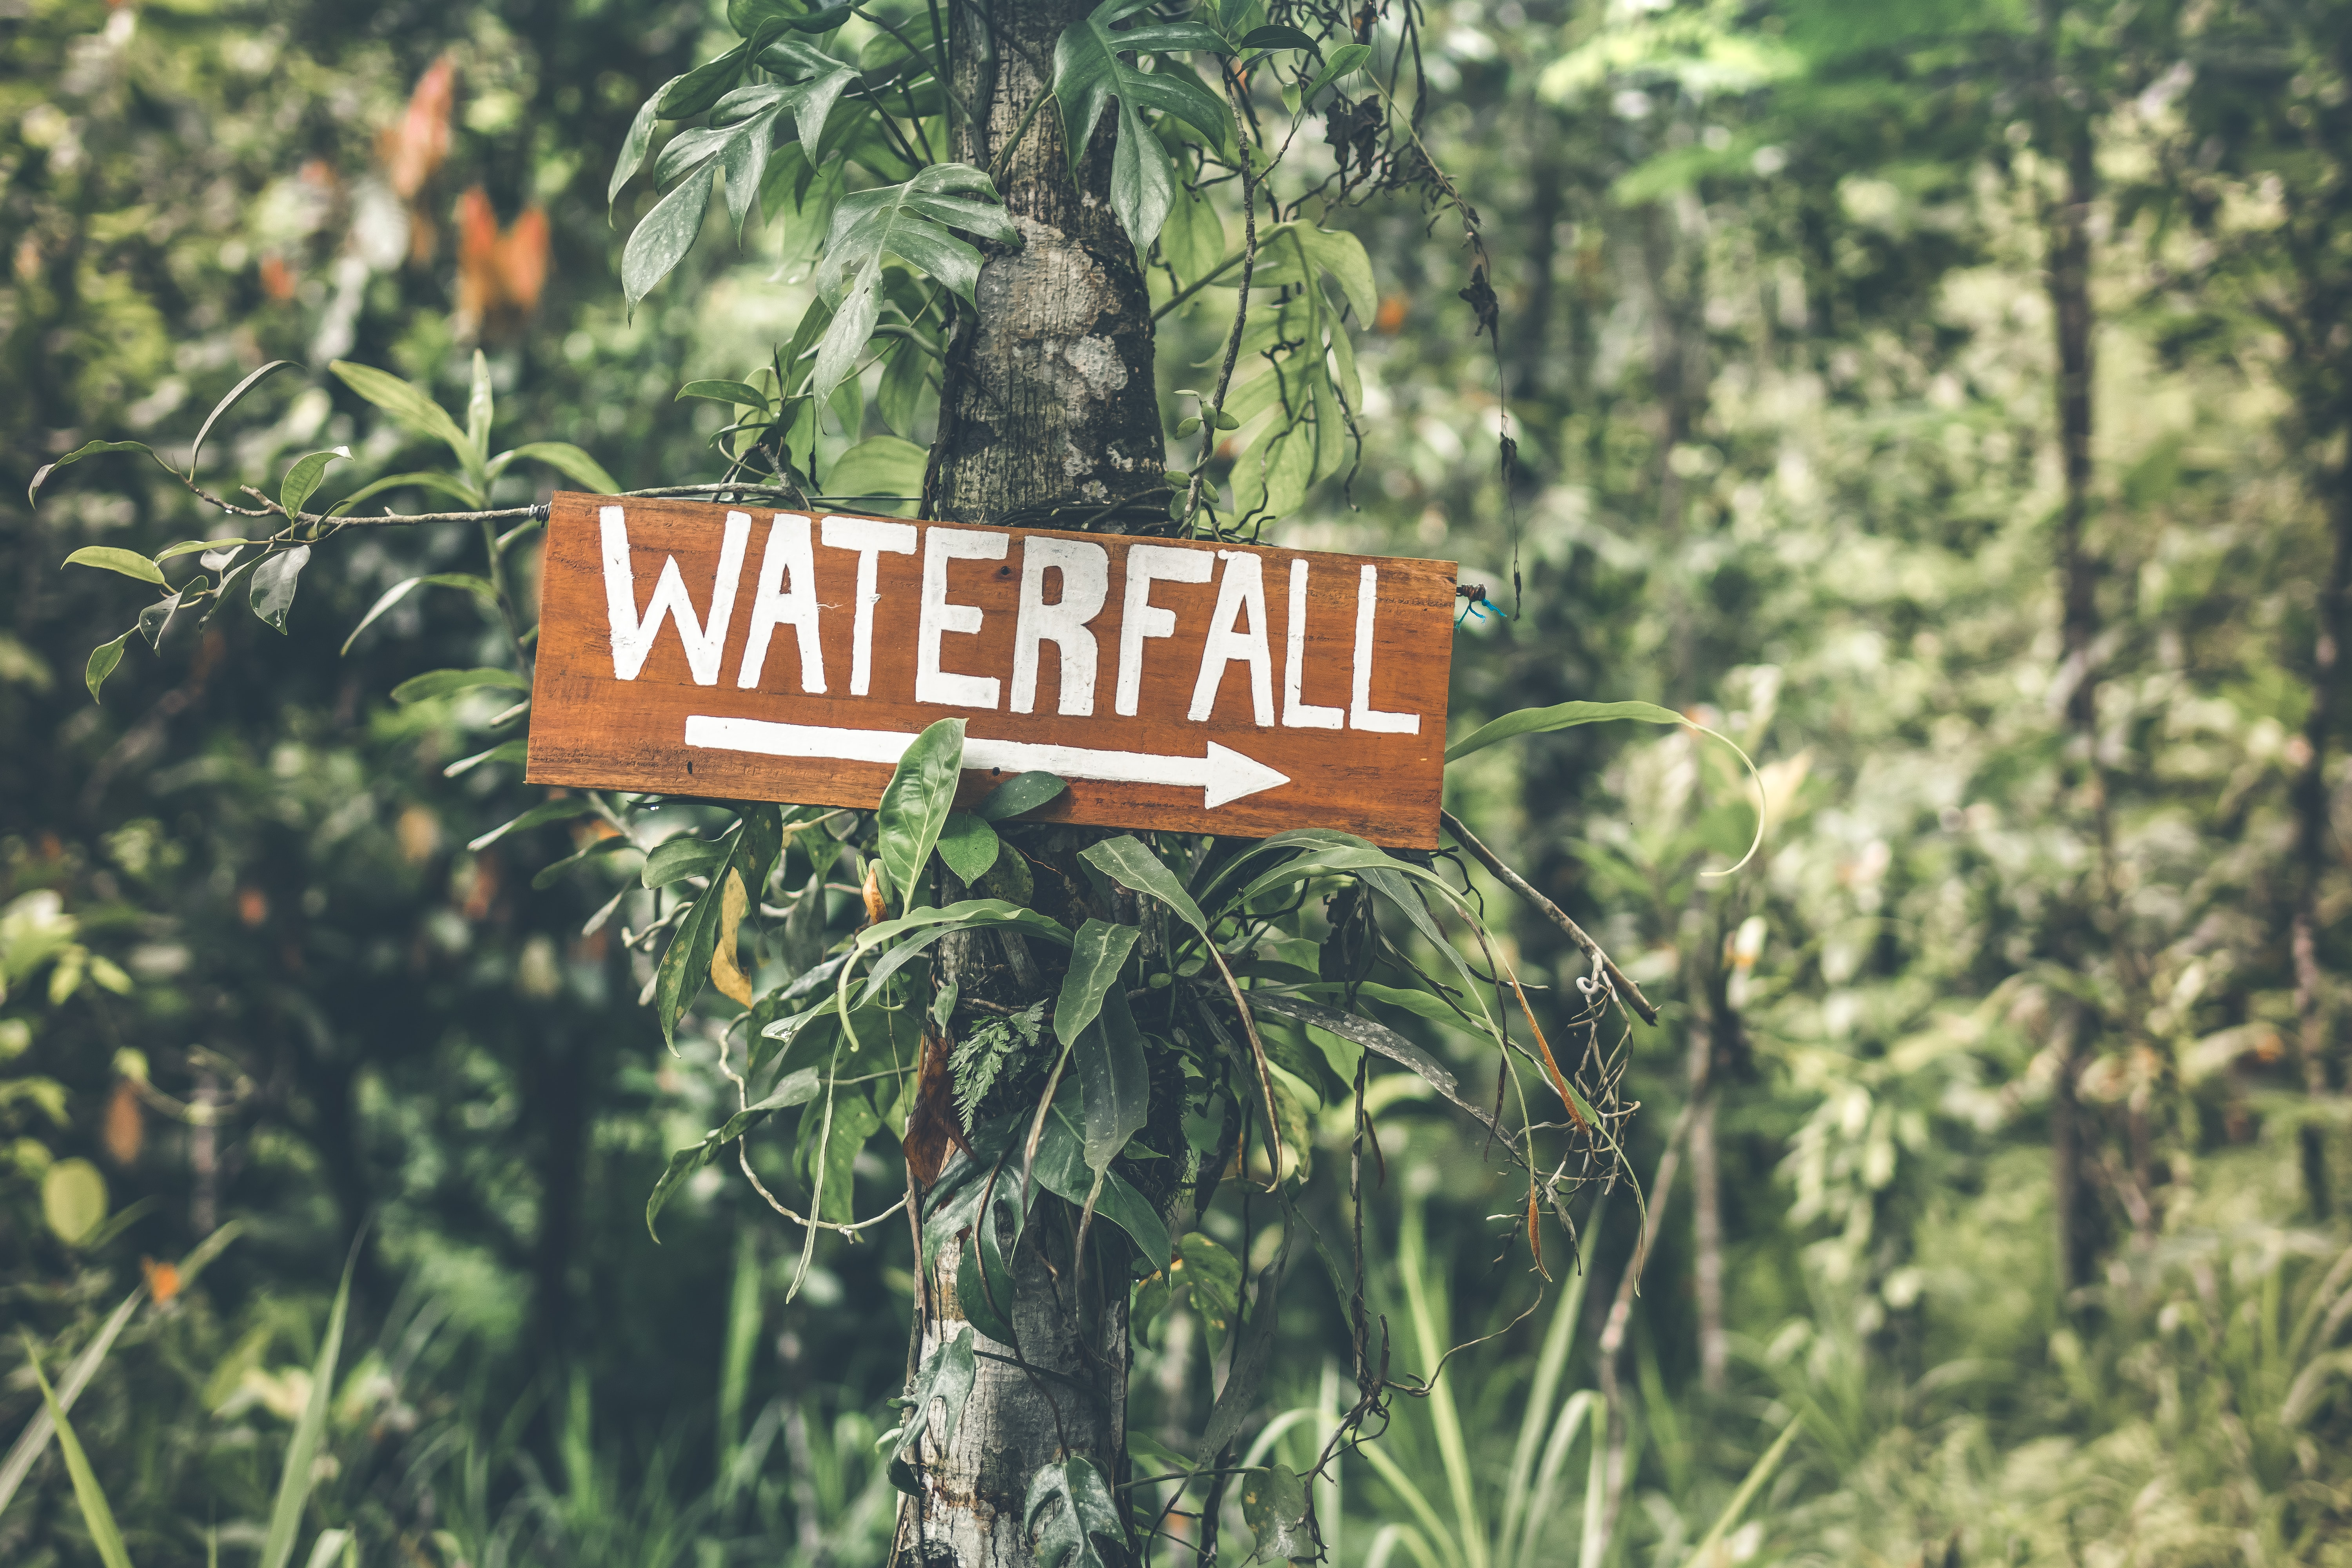 selective focus photography of Waterfall signboard